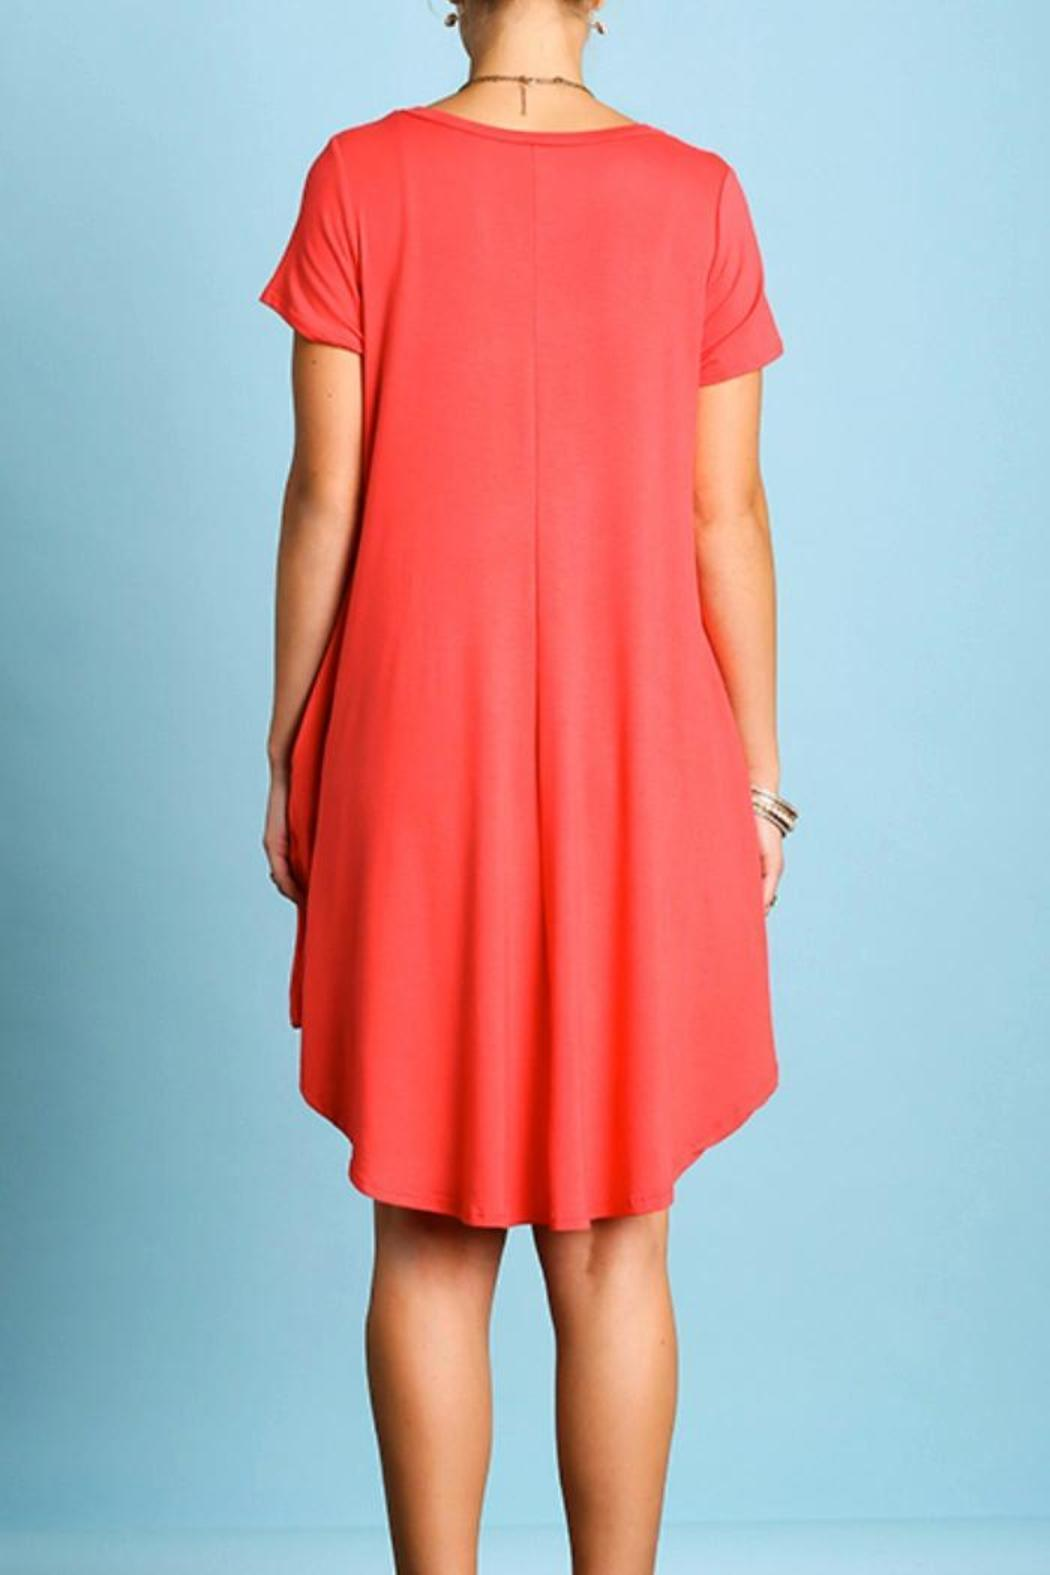 Umgee USA Short Sleeve Dress - Main Image